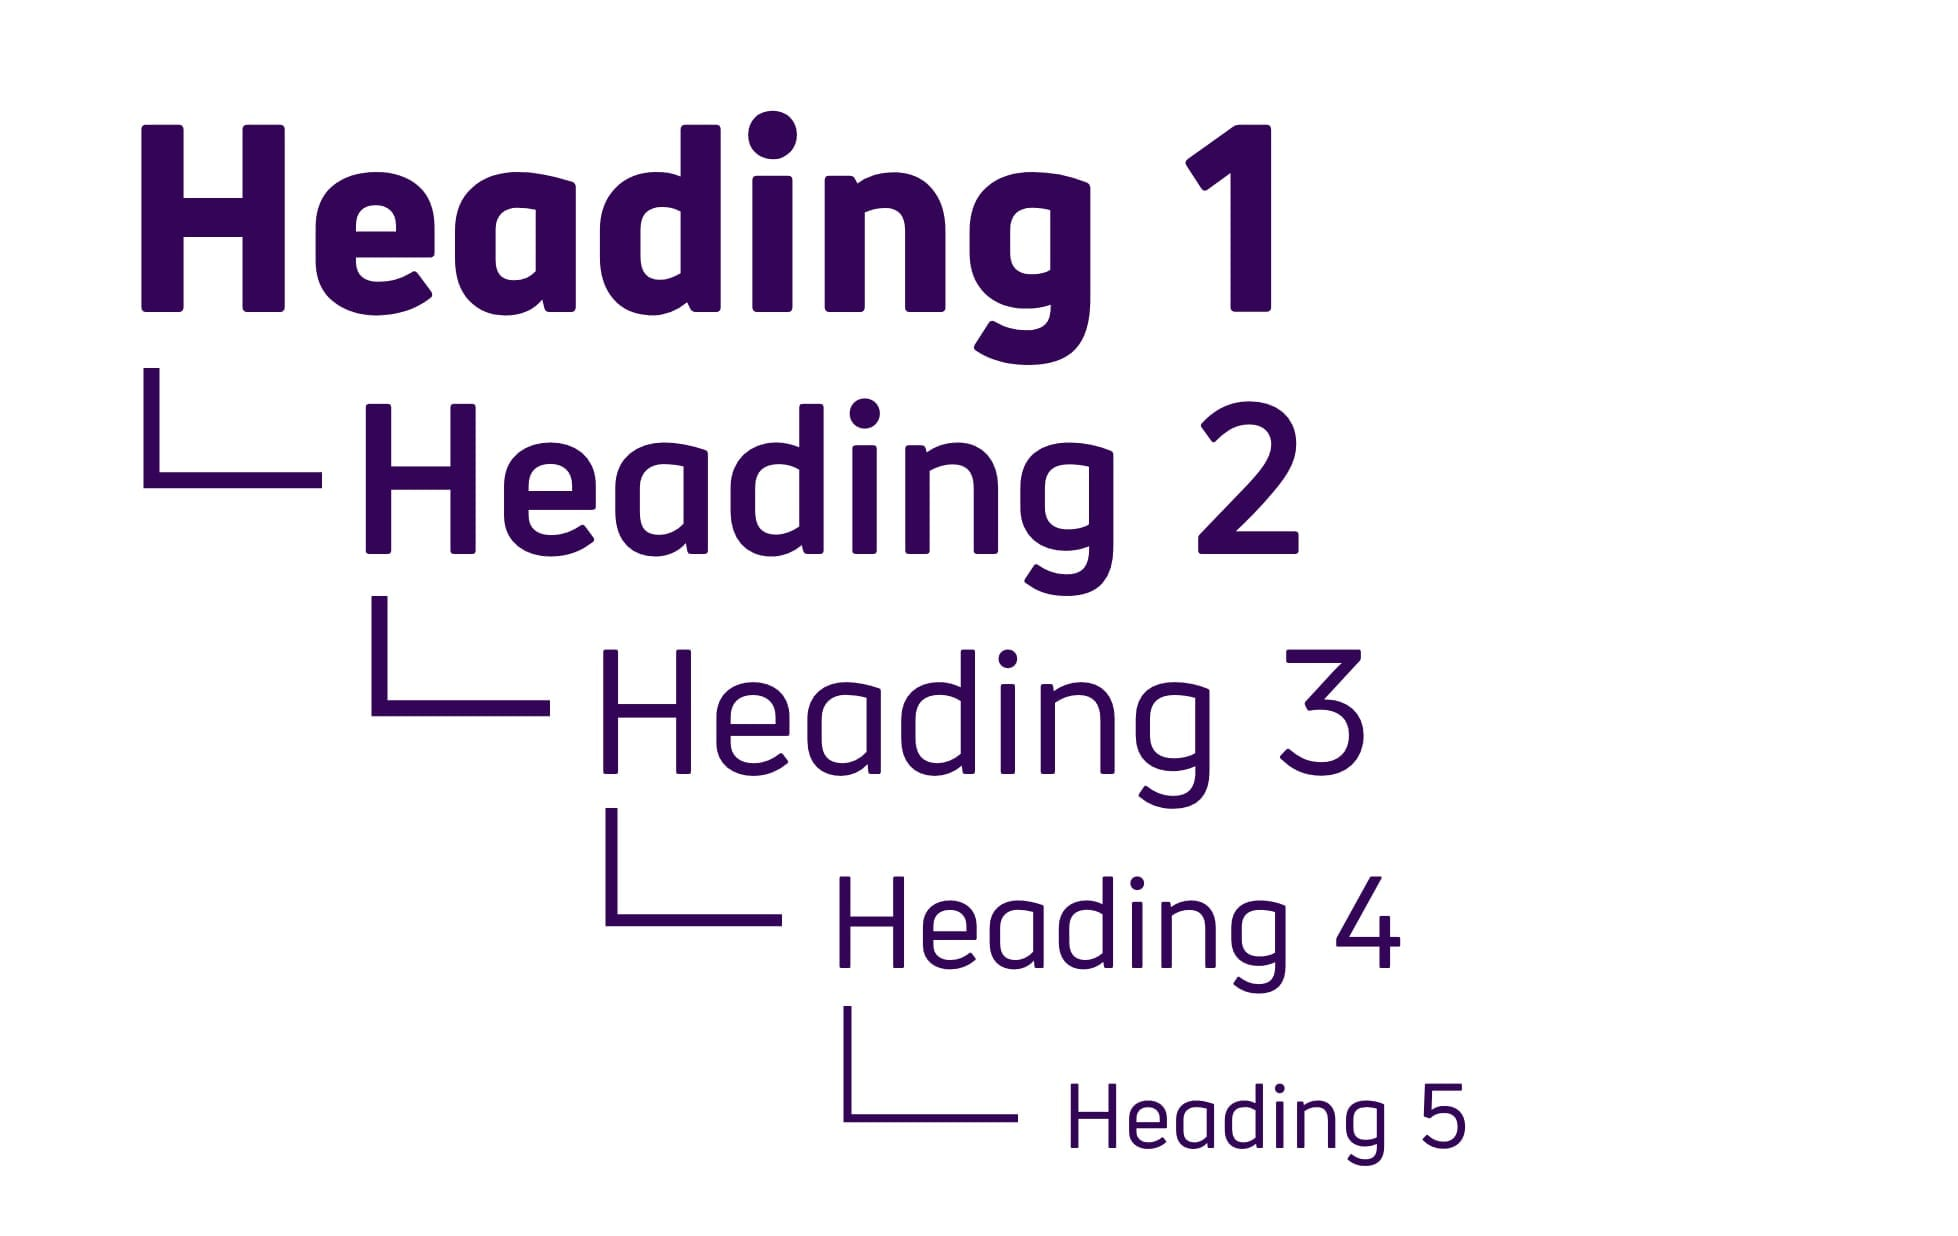 Logical heading structure begins with Heading 1, with Heading 2 sitting beneath heading 1. Heading 3 sits within heading 2 and so on.